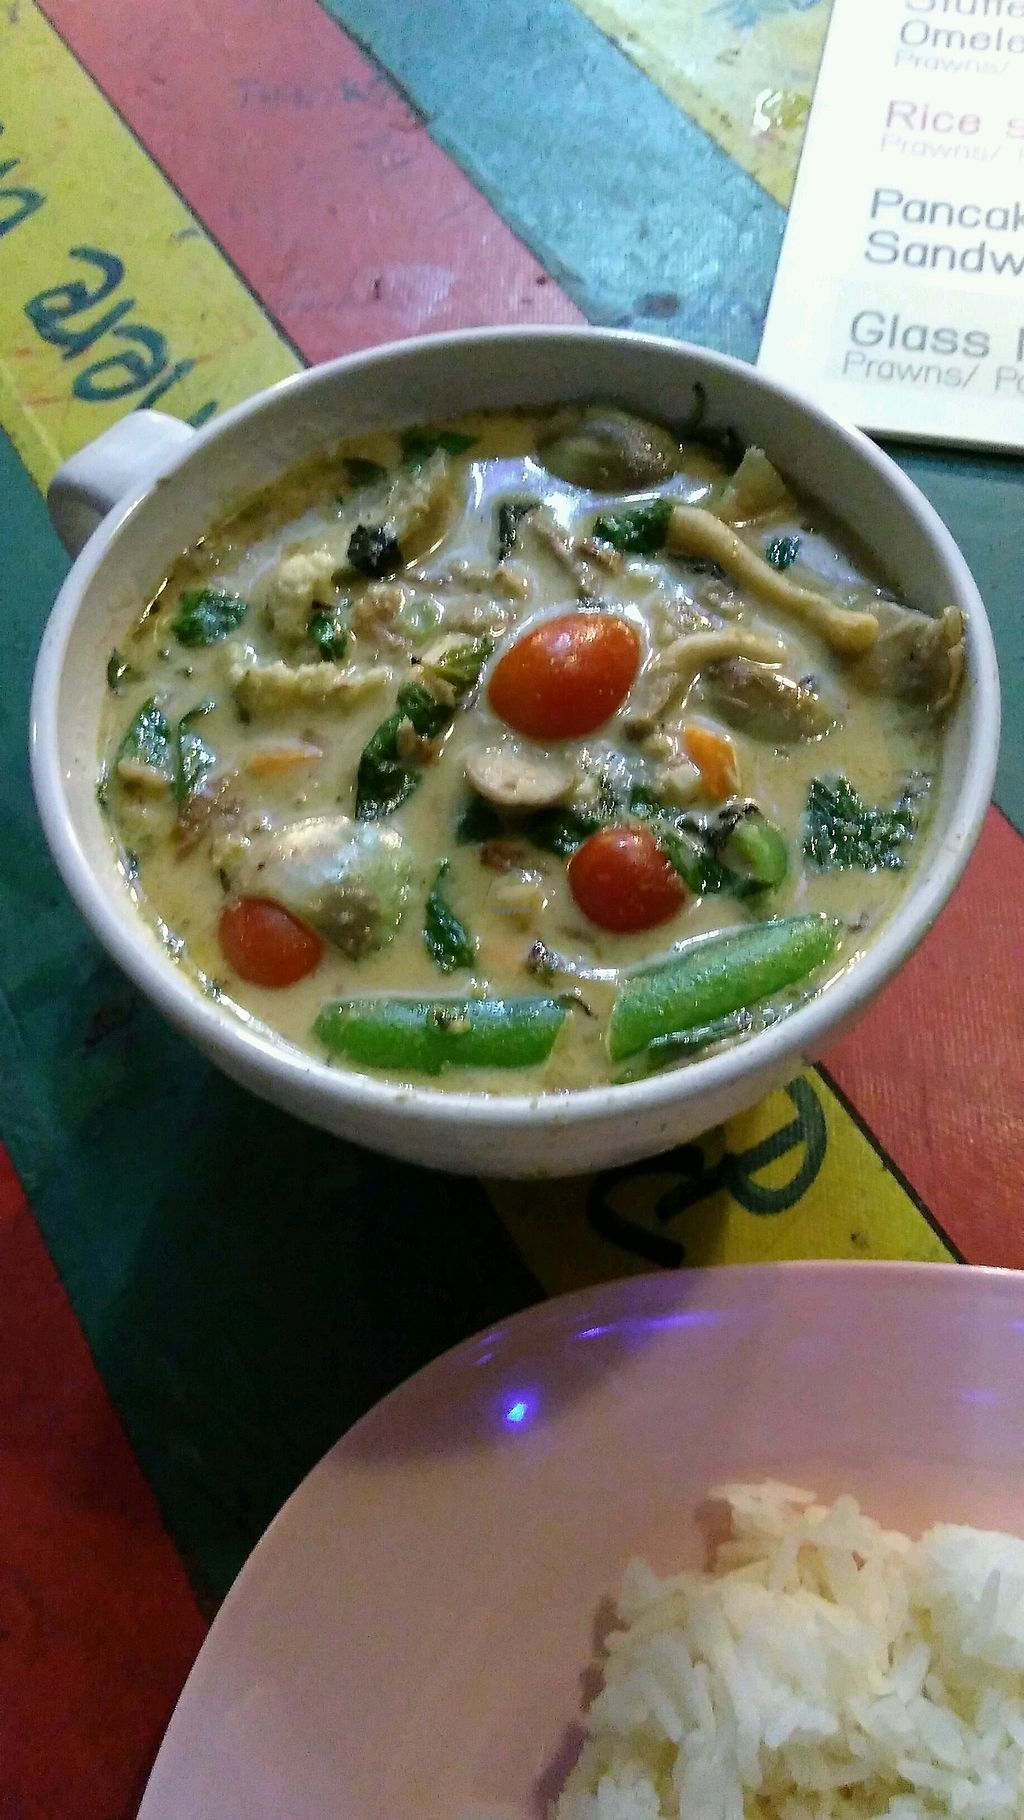 "Photo of Big Mama's  by <a href=""/members/profile/ospencer91"">ospencer91</a> <br/>delicious thai green veggie curry w/tofu <br/> August 21, 2017  - <a href='/contact/abuse/image/99198/295178'>Report</a>"